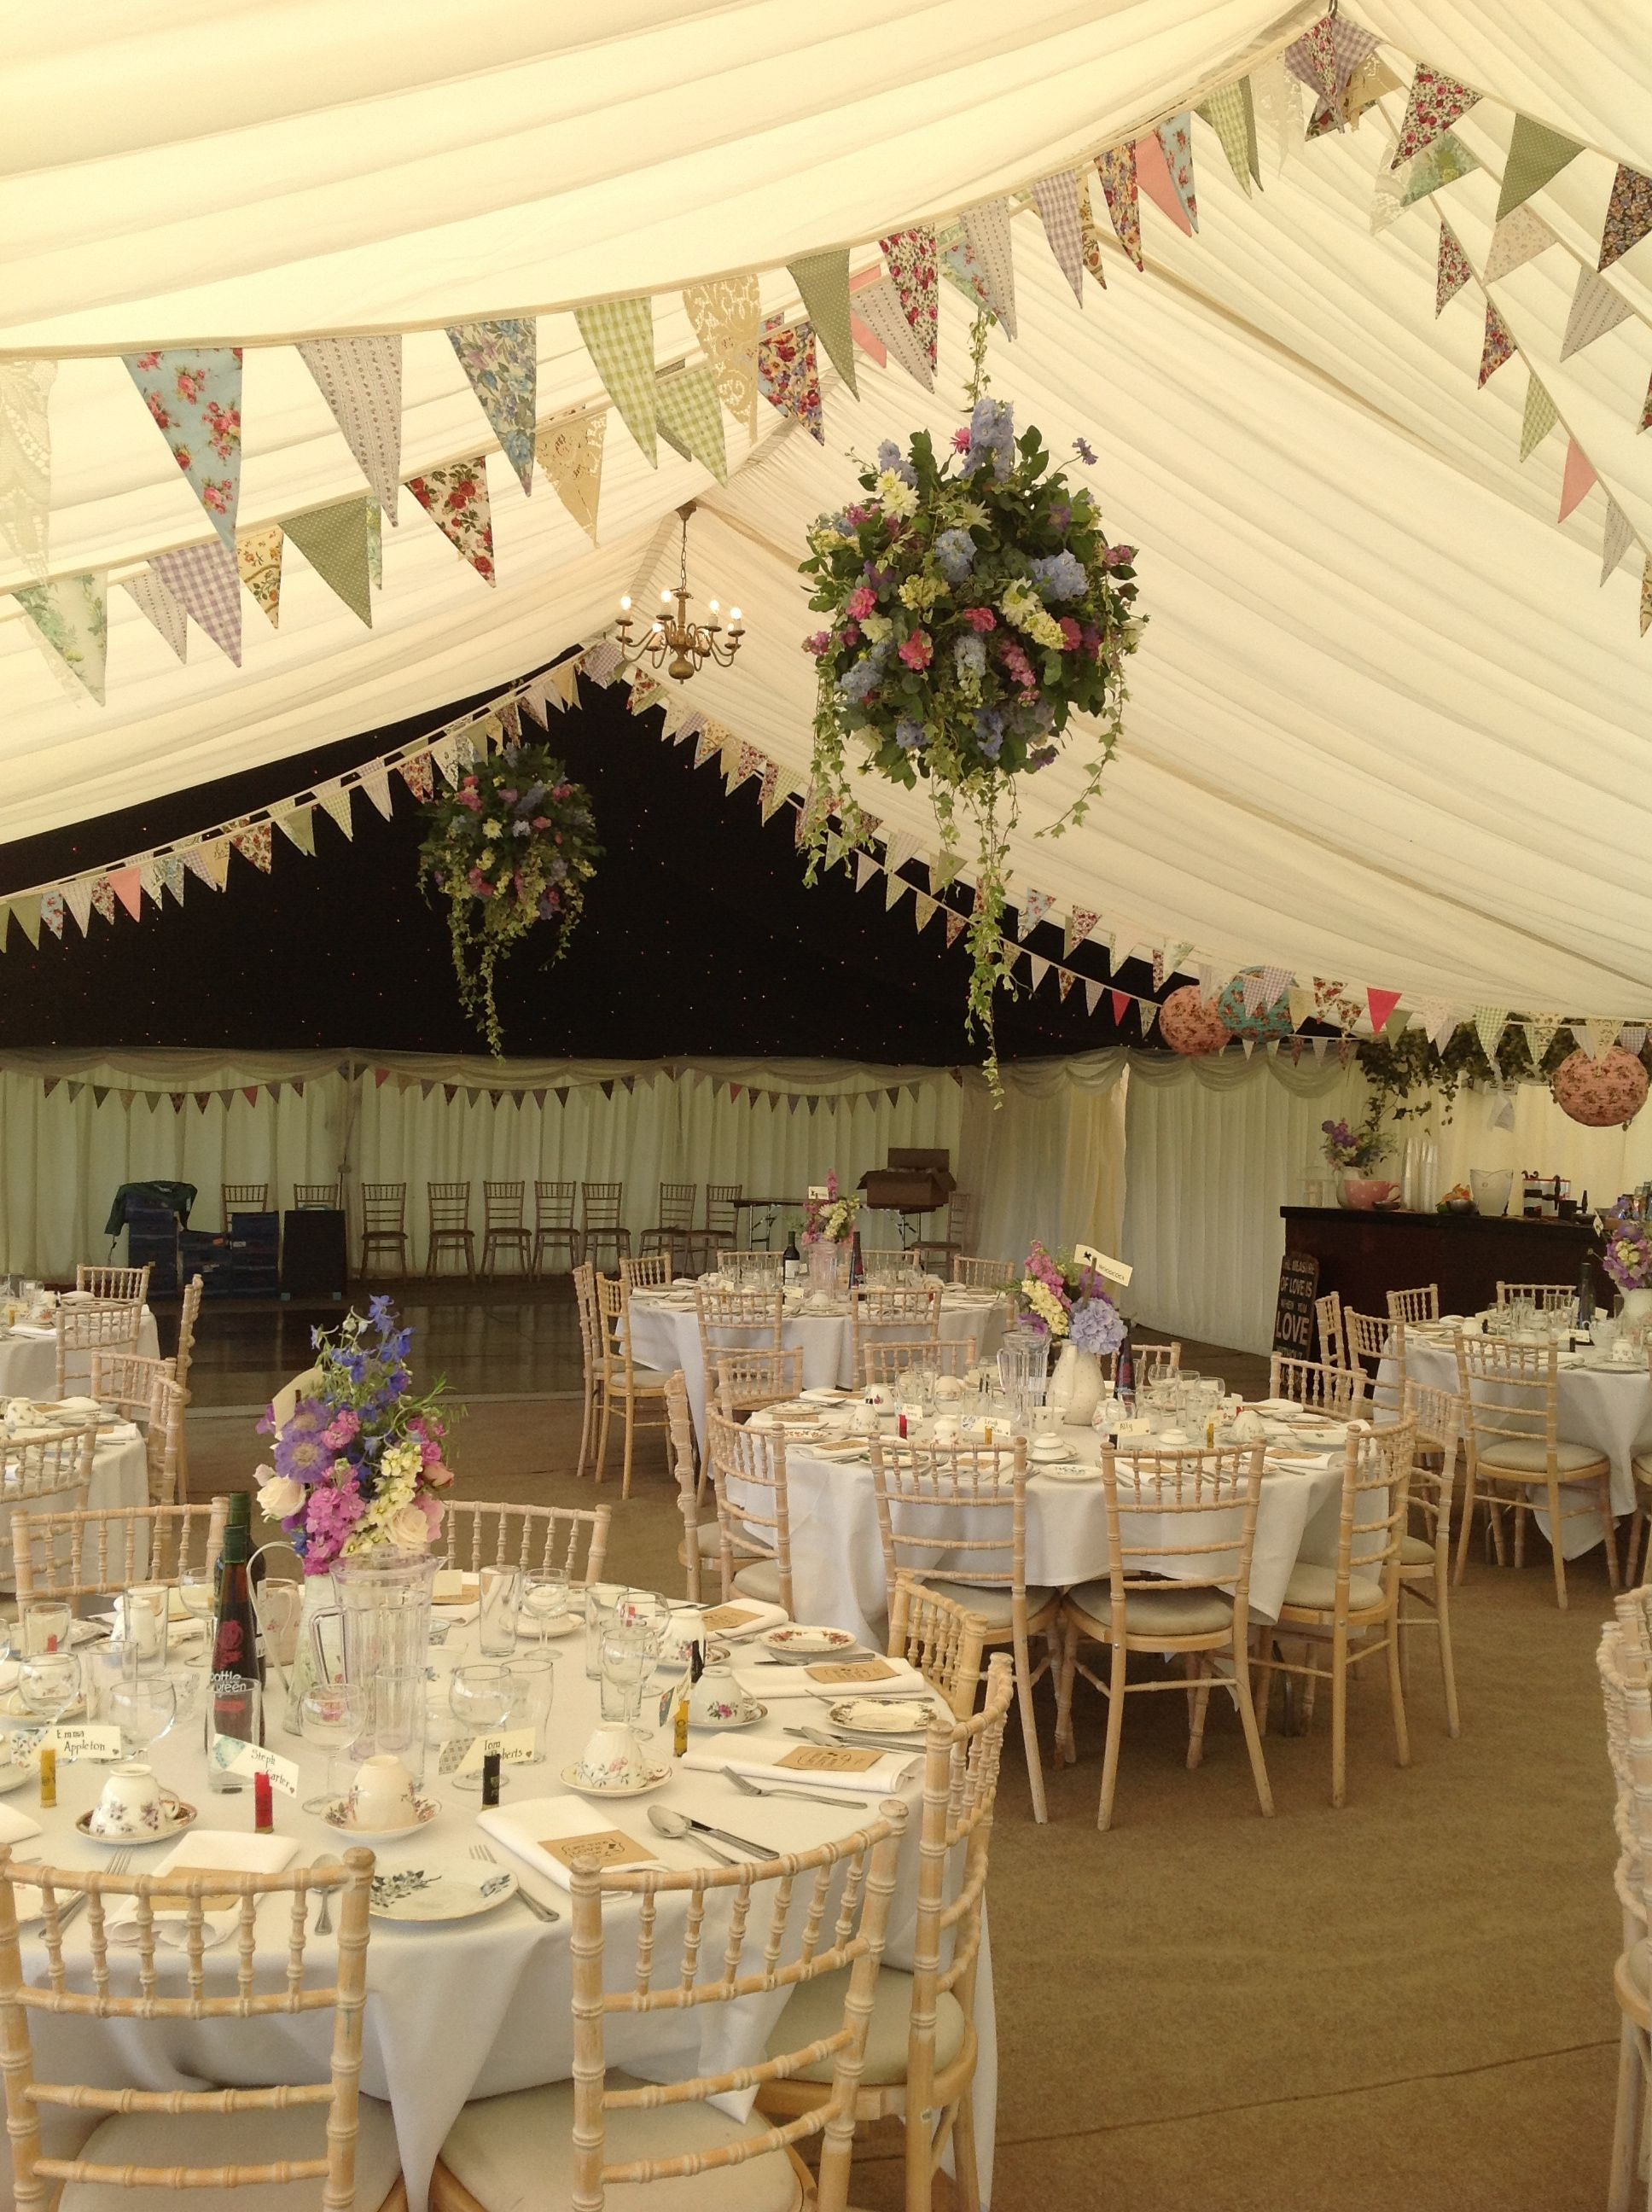 Stunning Hanging Flower Displays Create The Wow Factor In This